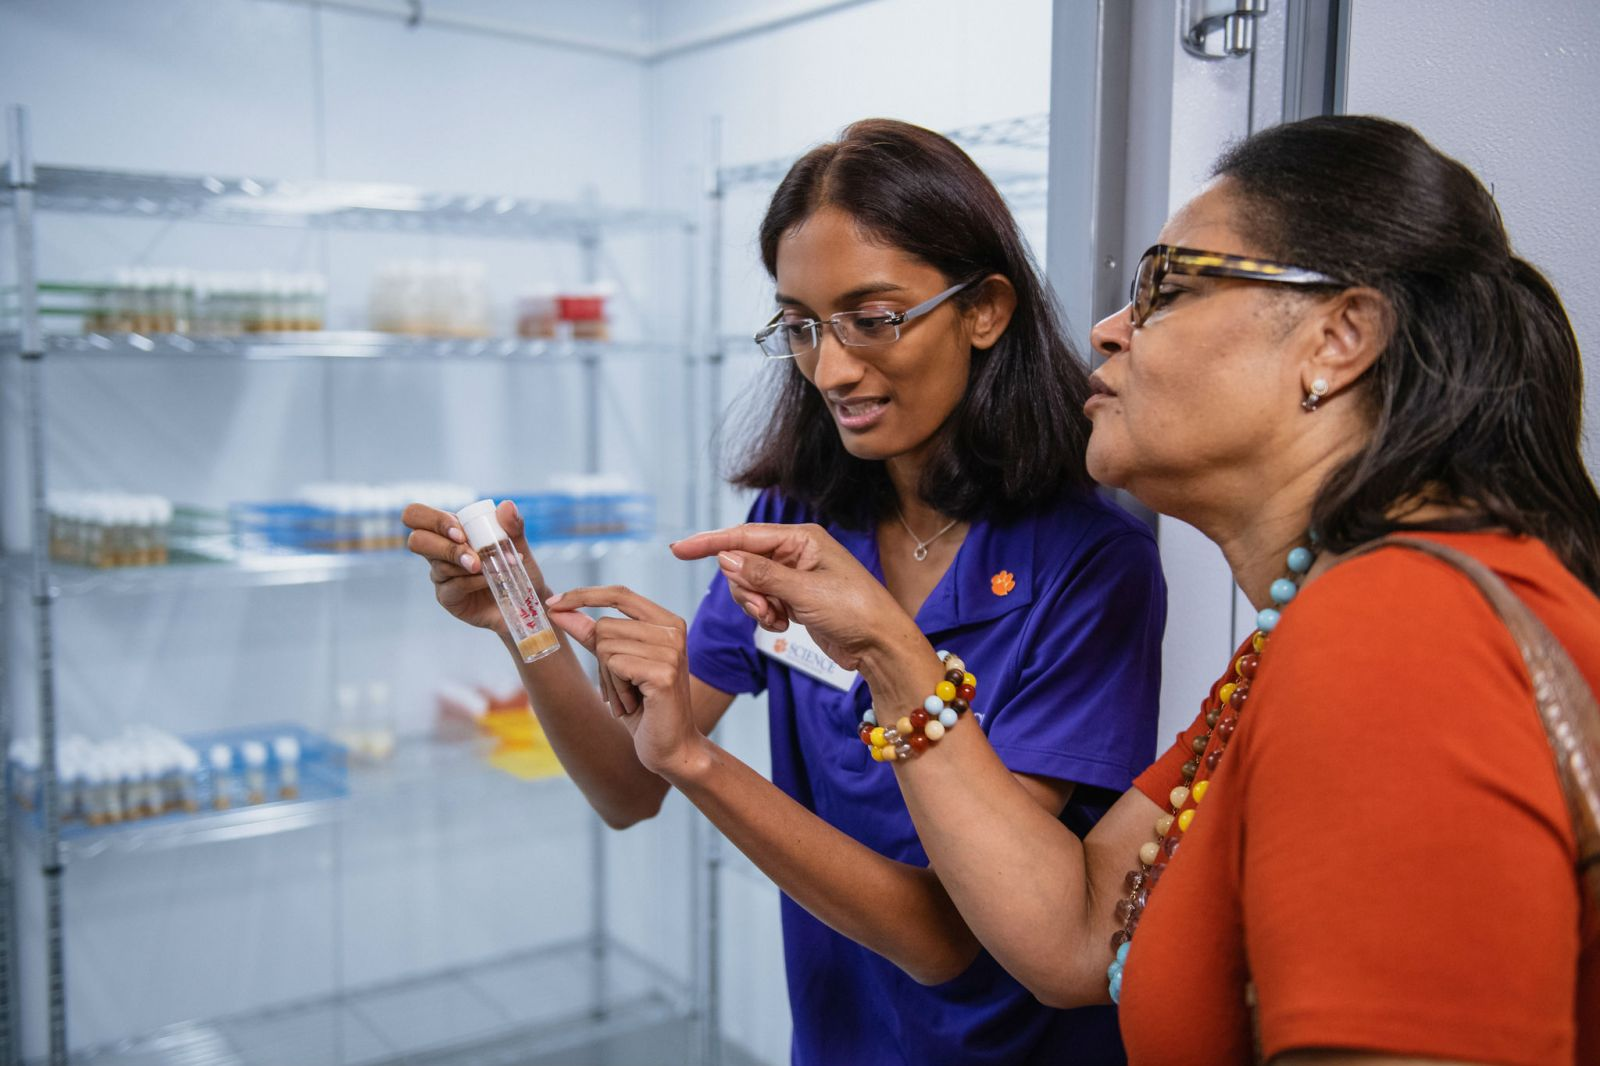 Doctoral student Sneha Mokashi (left) shows a sample to a guest at the opening of the Clemson Human Genetics Center. (Photo/Provided)